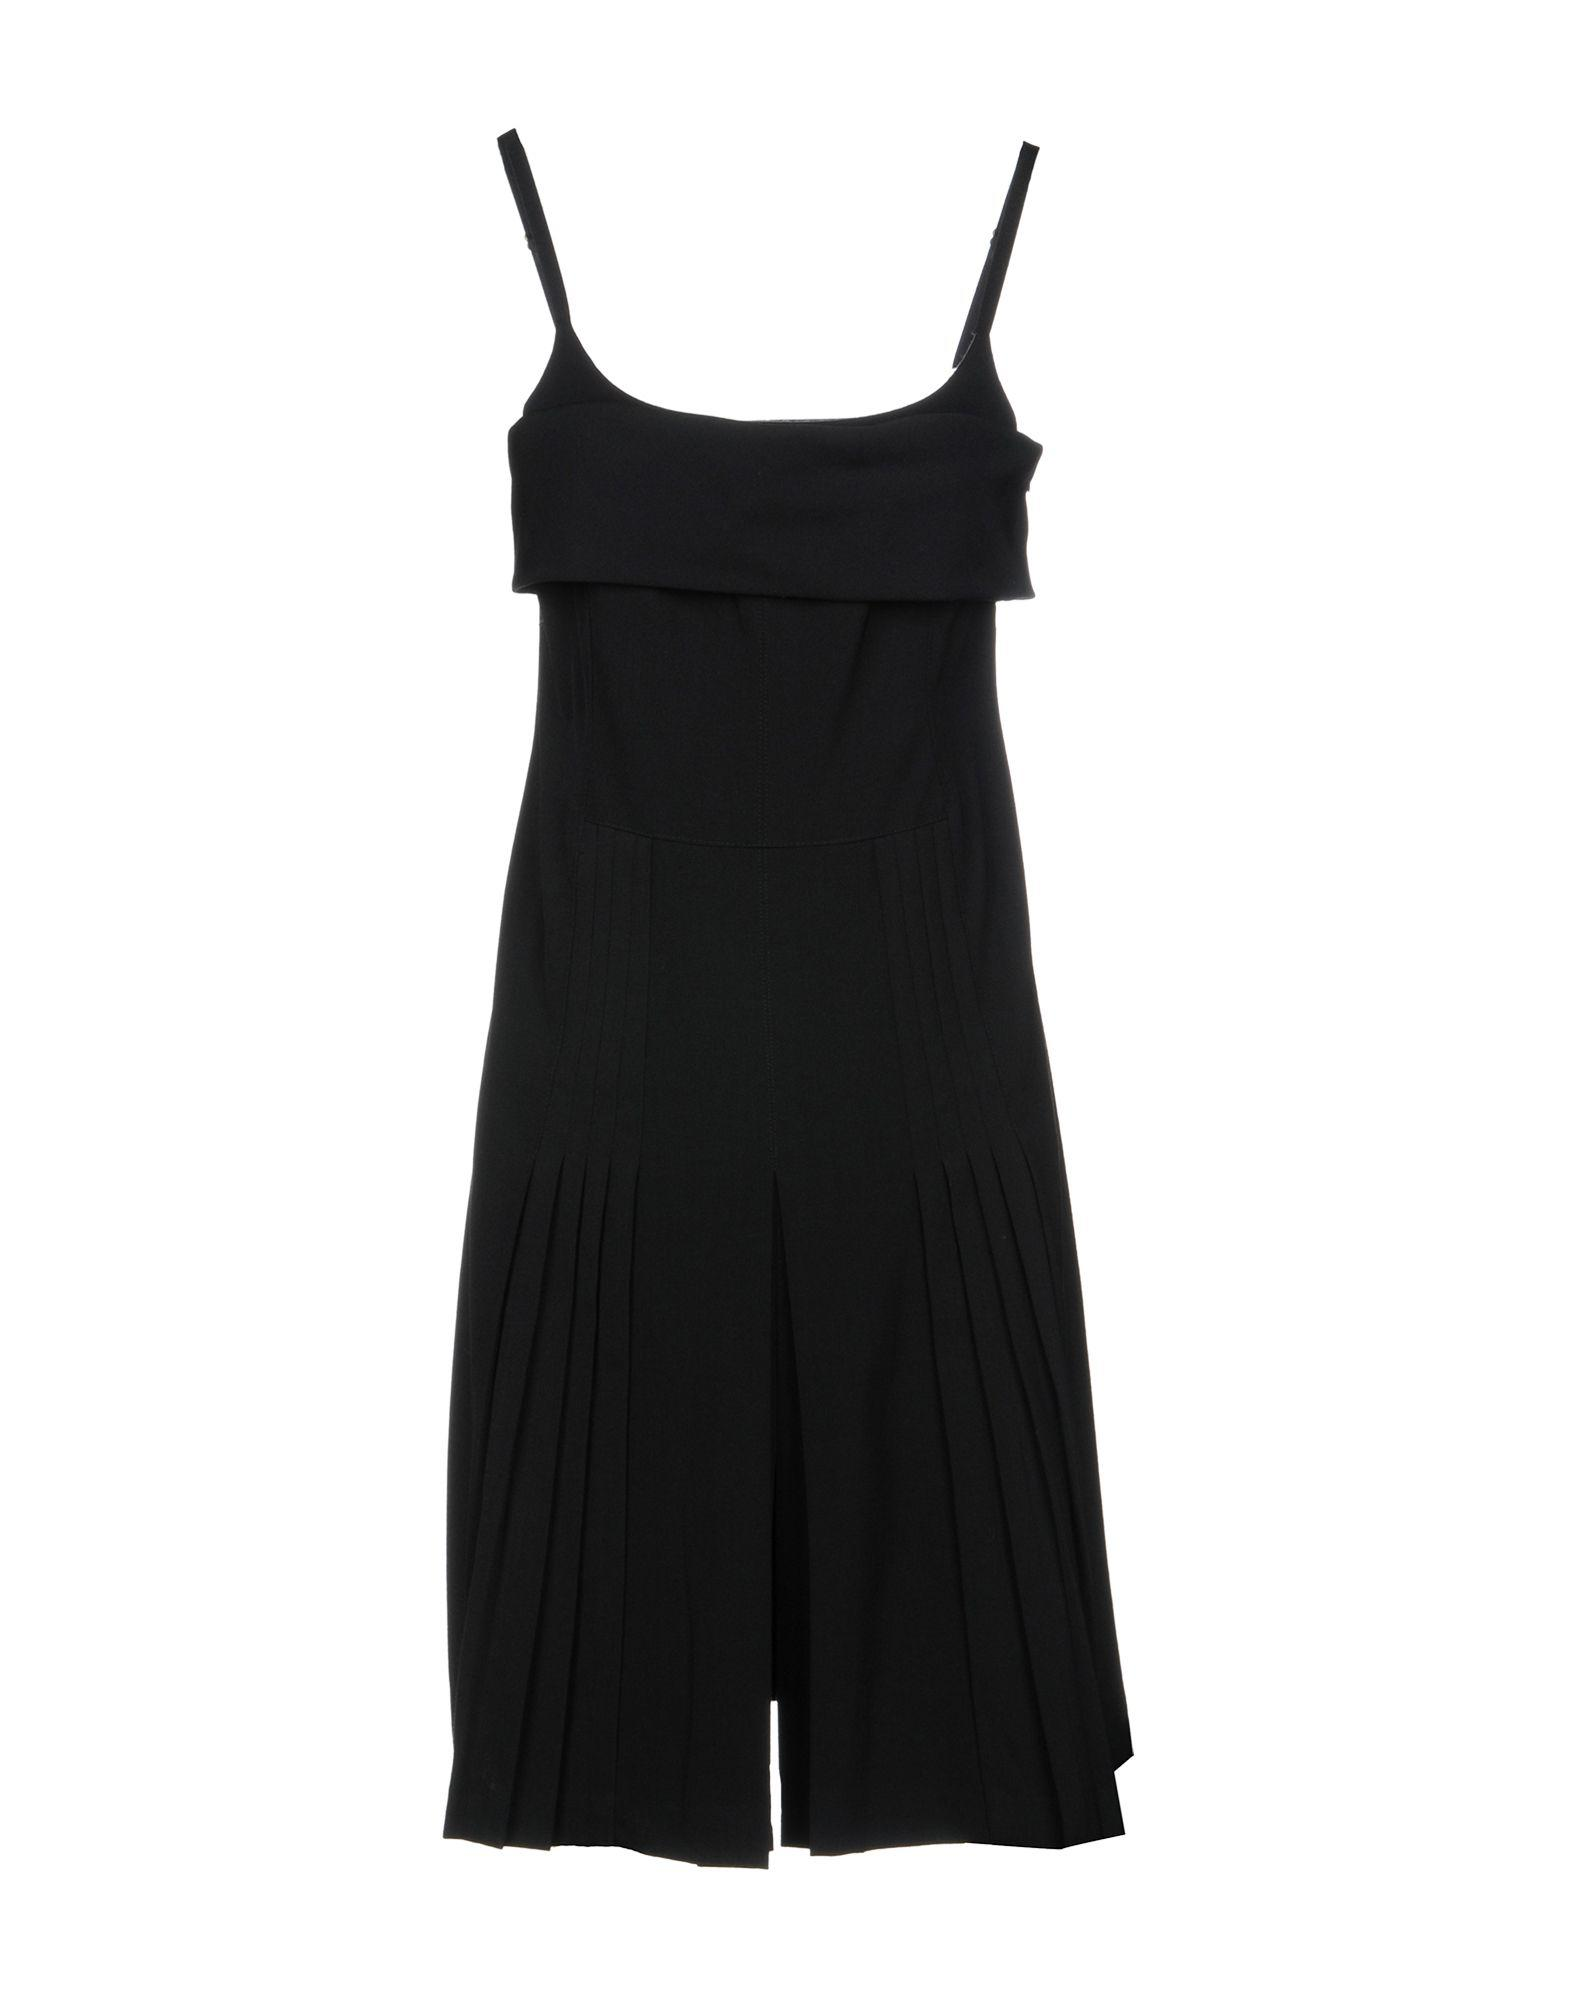 Classic Cheap Online Outlet Low Price Fee Shipping DRESSES - Knee-length dresses Massimo Rebecchi Outlet Factory Outlet 1pxhNB